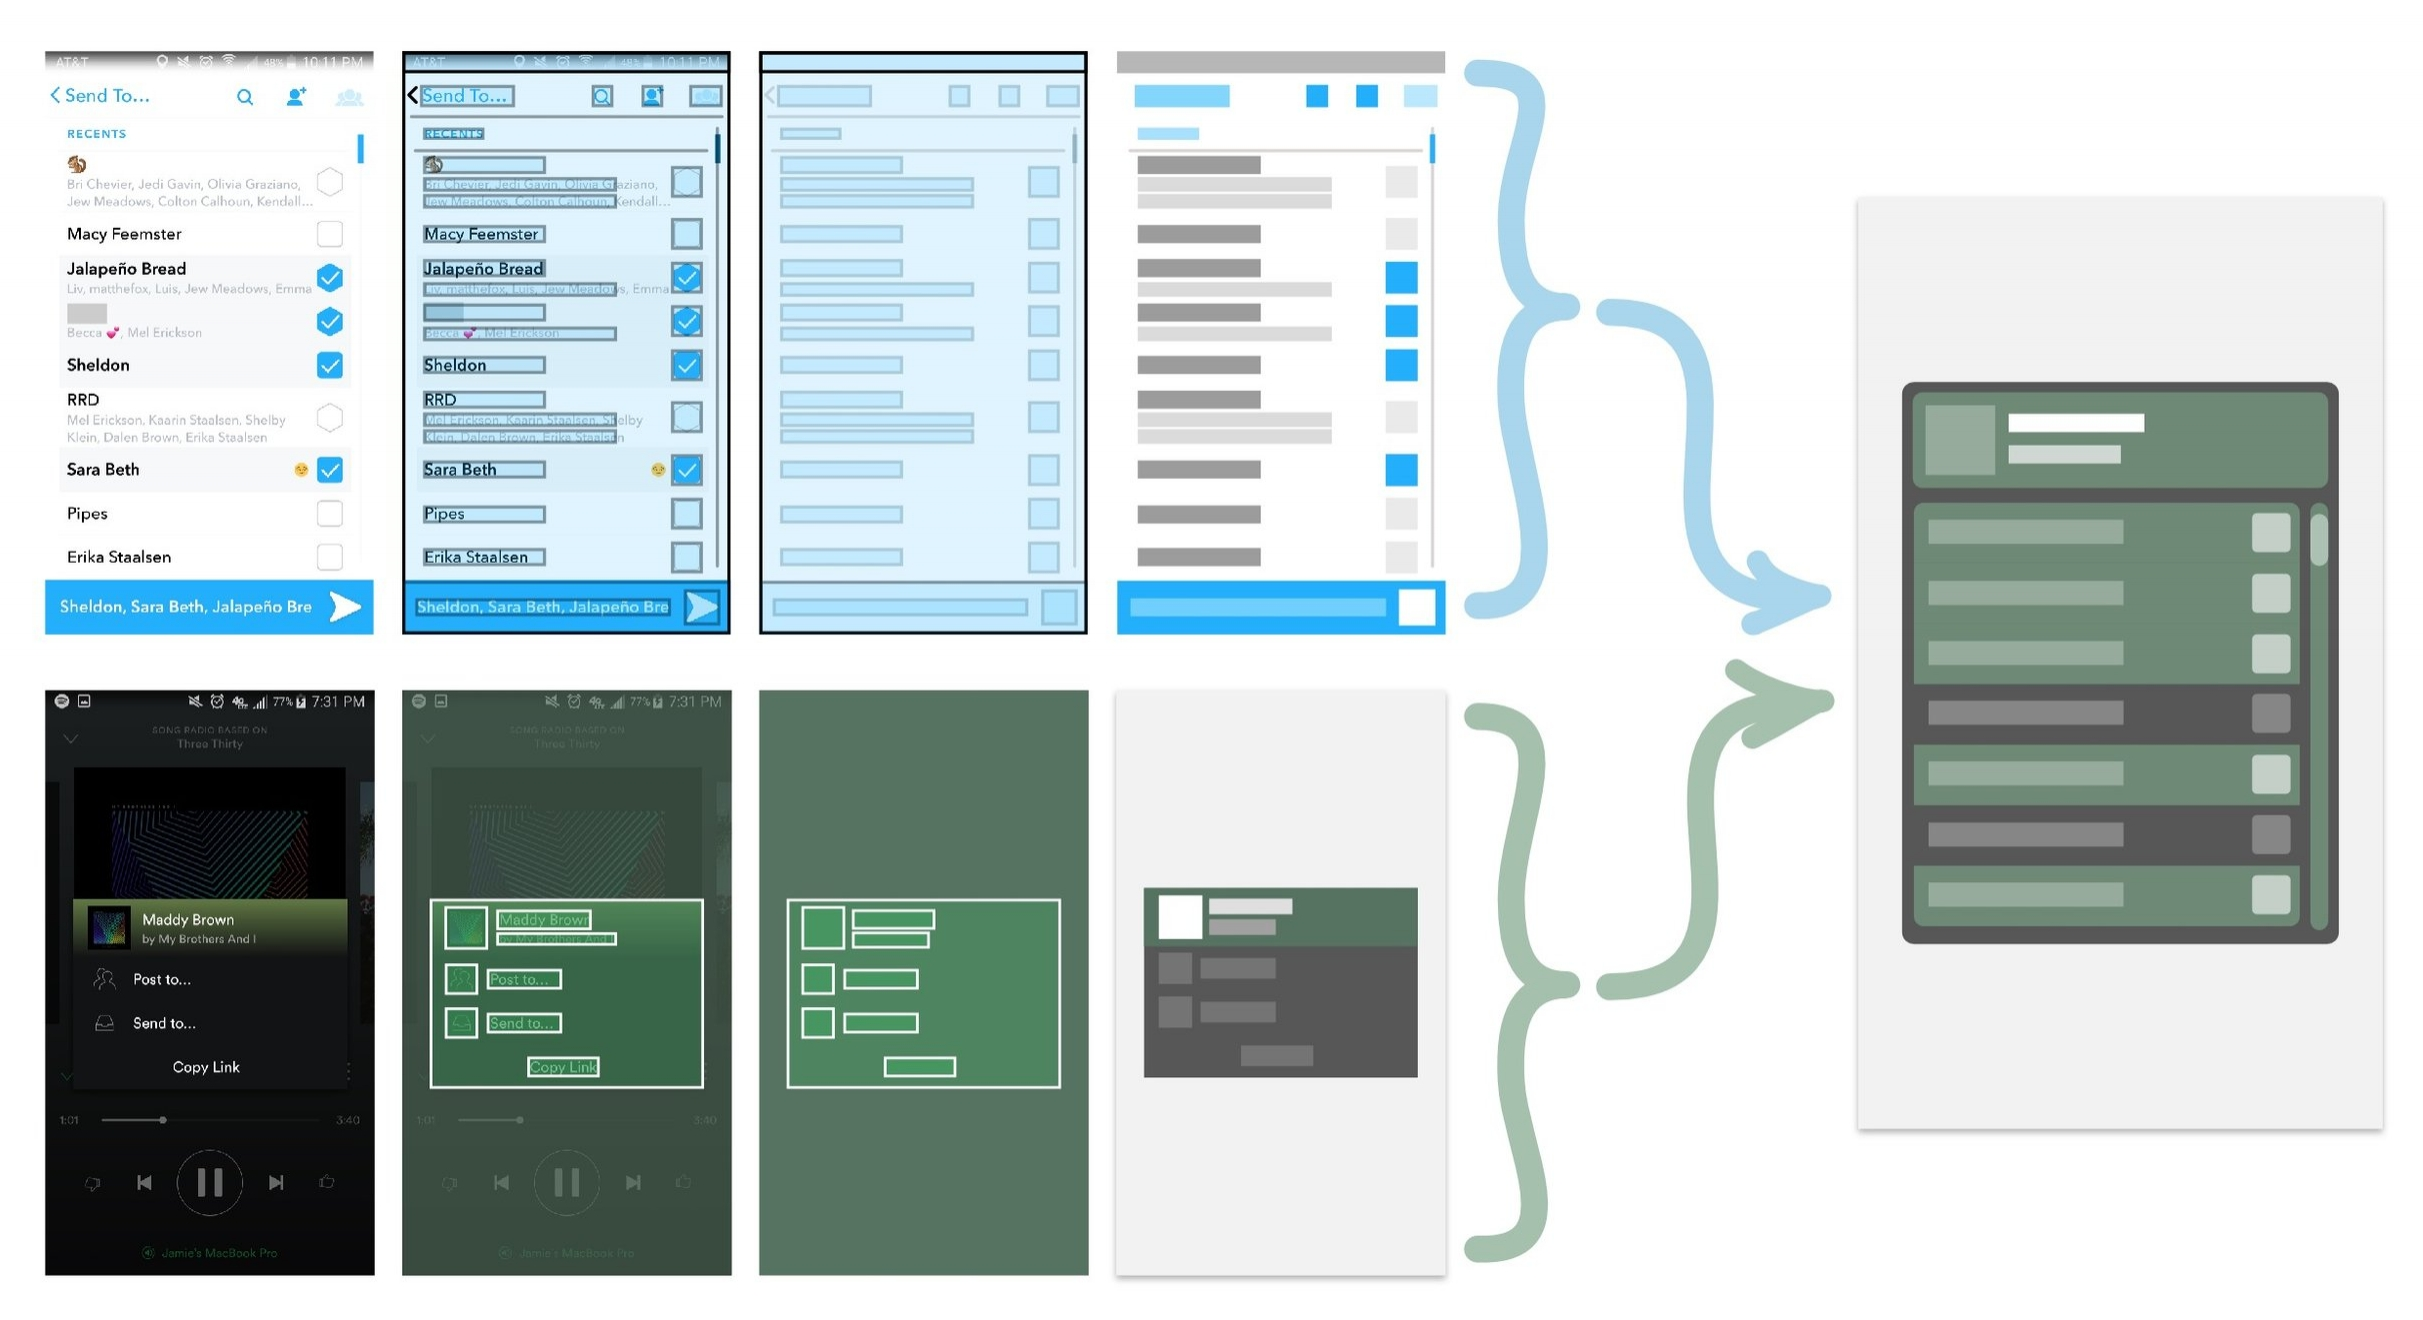 Overview of prototype workflow, combining and synthesizing existing elements to make new elements.